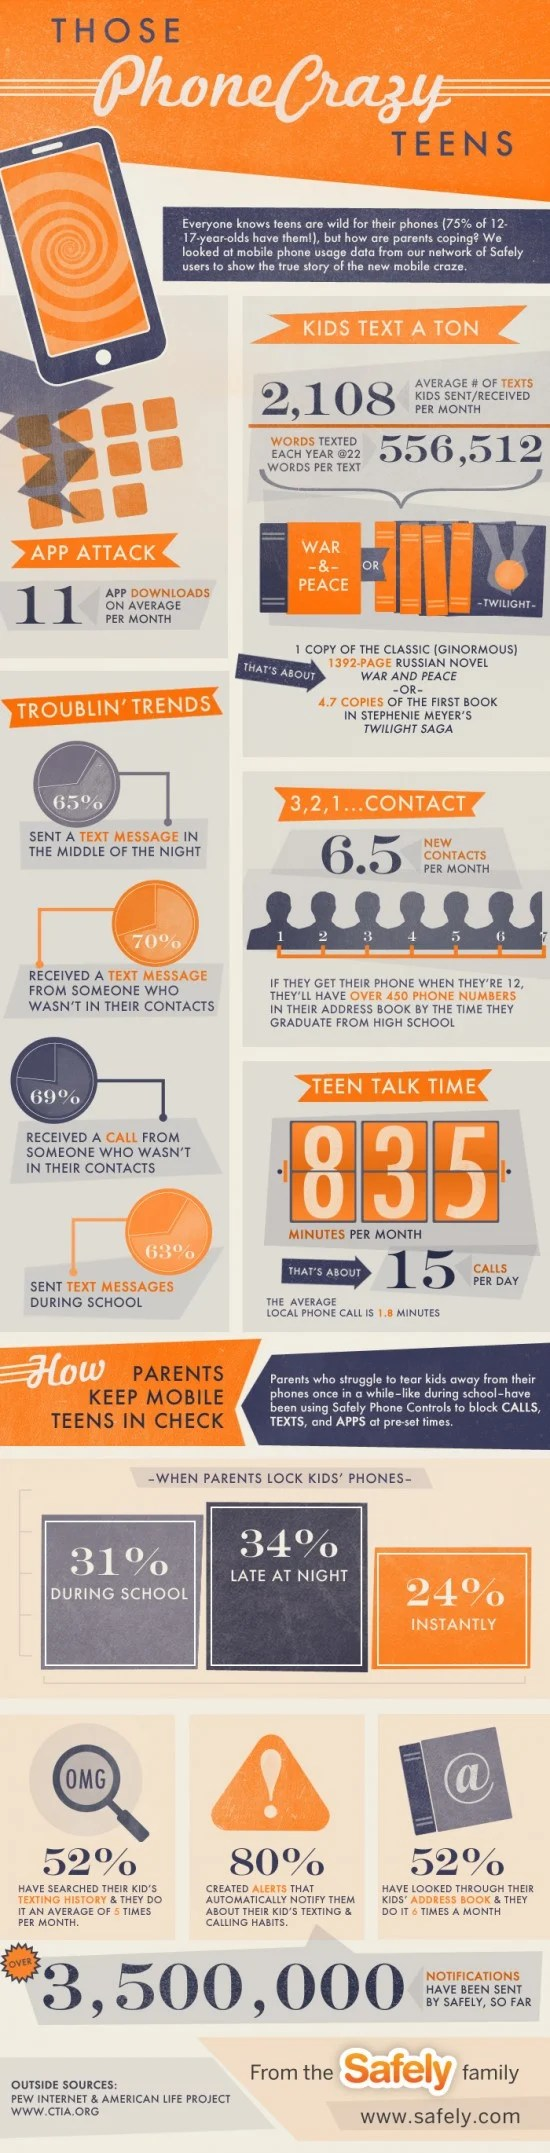 Teen texting and smartphone habits